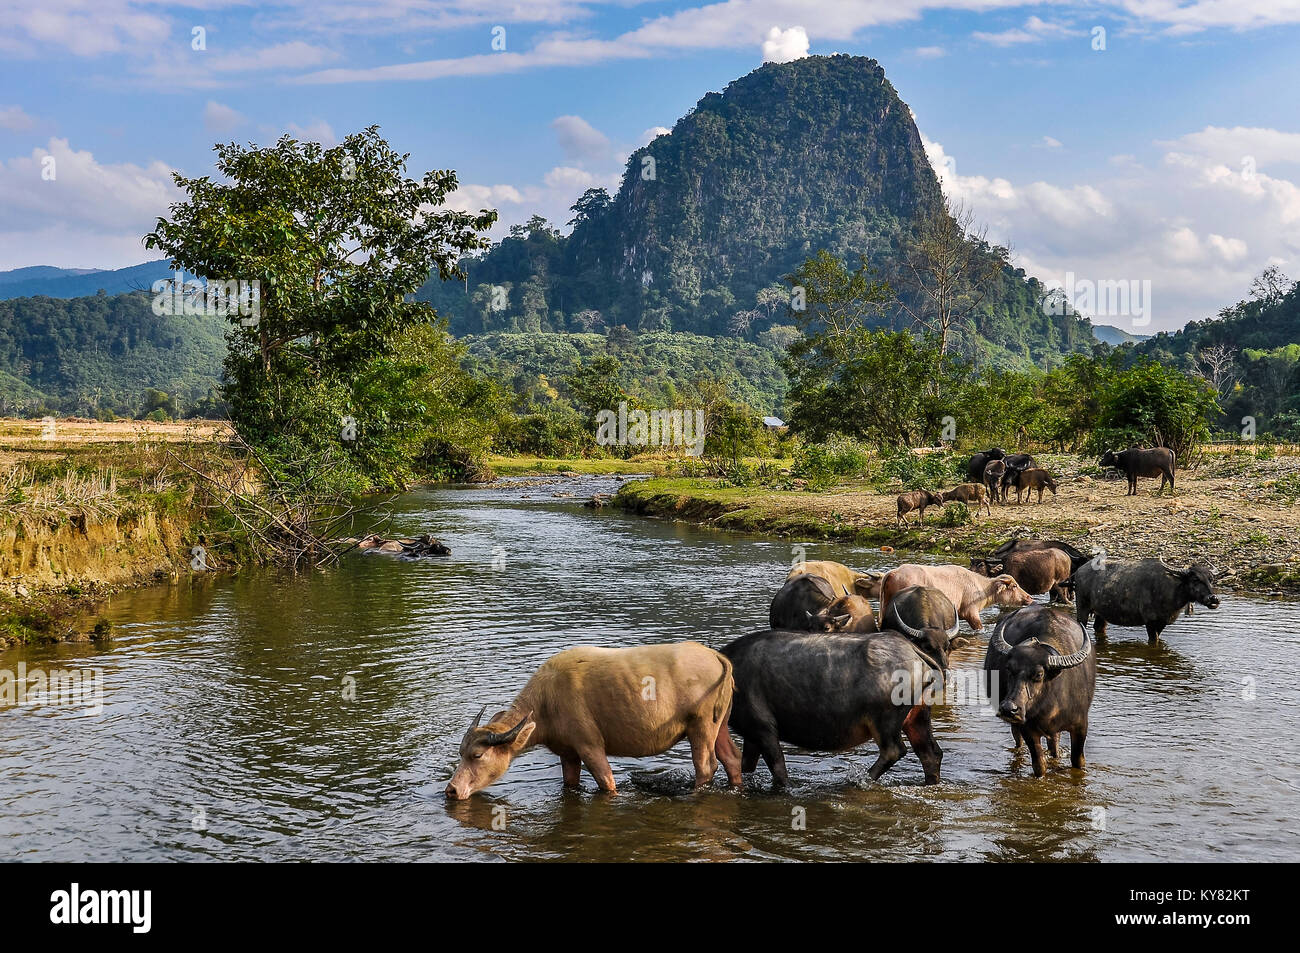 Water buffalos in the remote village of Muang Ngoi in Northern Laos - Stock Image